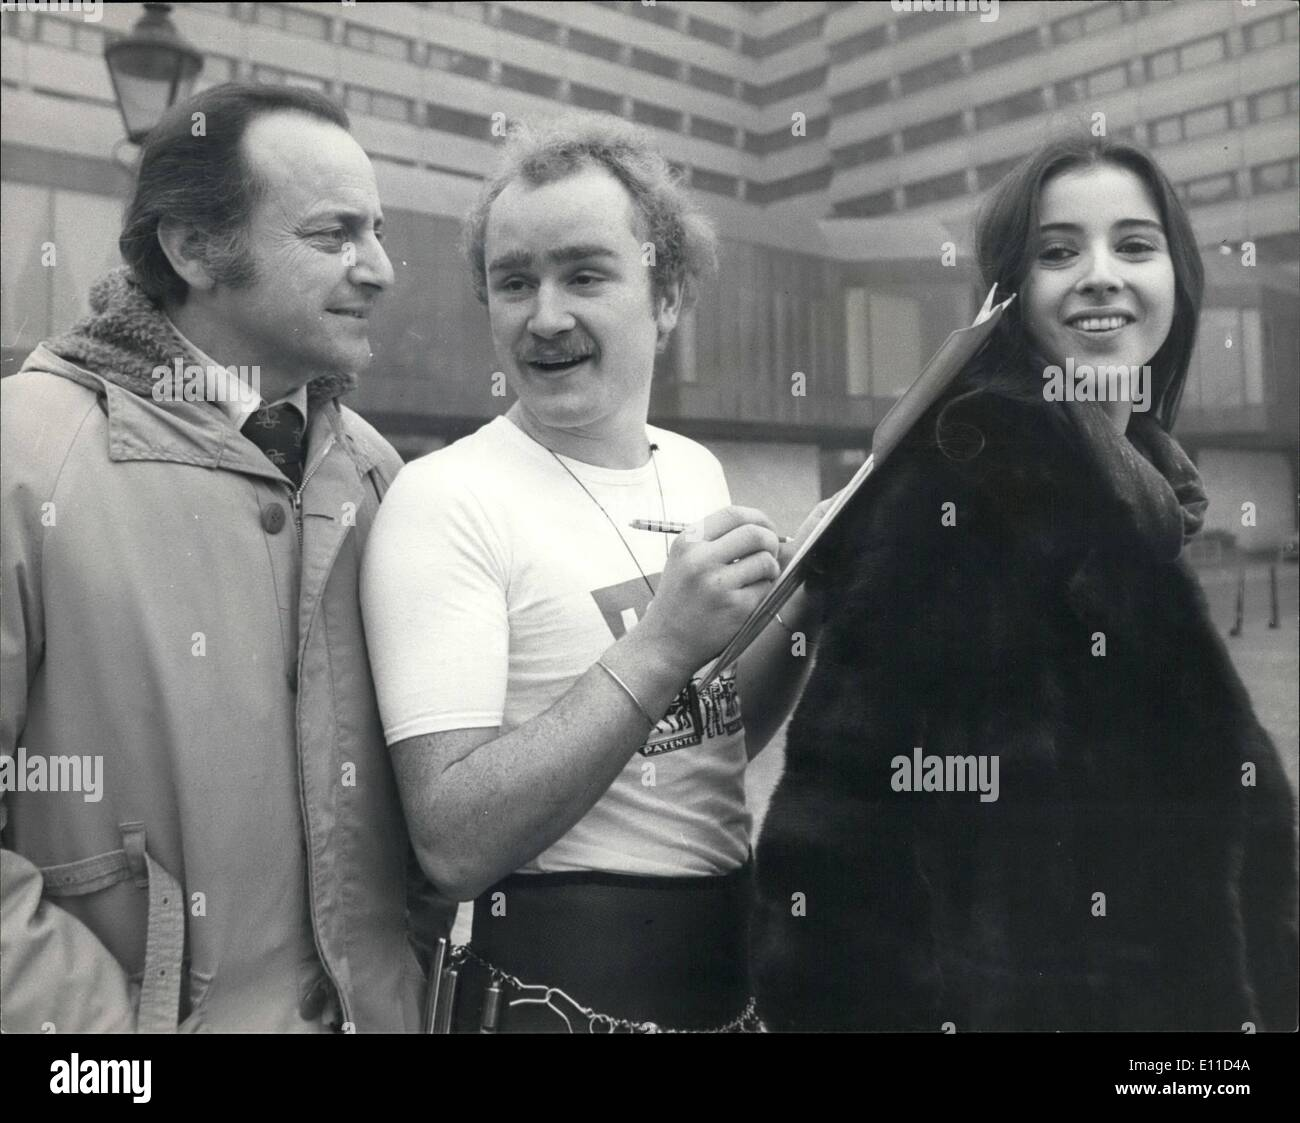 Feb. 02, 1977 - Pop star Steven Haynes to dive off 28 London bridges to raise money for one parent families.: Stever Haynes, aged 20, from Broomley, Kent, who last jumped off 28 London bridges in August 1975, is to do it once again on March 5th, but this time it is for the One Parent Families. He will start from Teddington and finish at Tower bridge. Many celebraties have offered their services on that day. Jimmy Saville and David Jacobs will be in the boat following up the Thames, to pick him out of the water and take him on to the next bridge - Stock Image